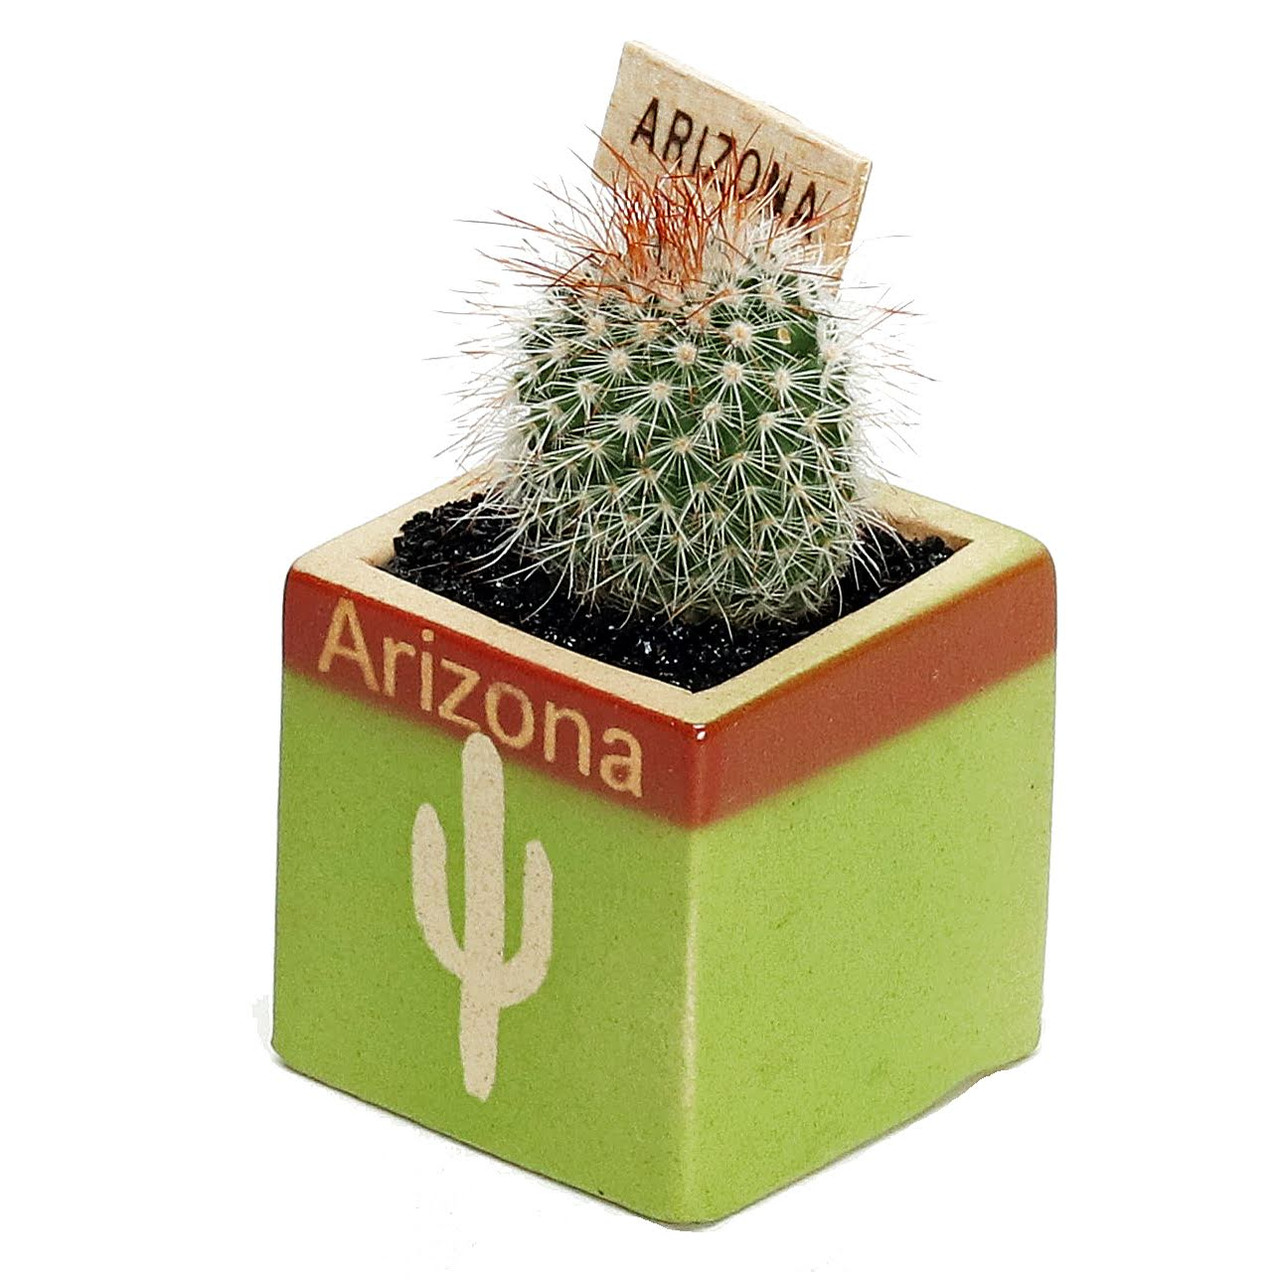 Arizona Cactus Green Cube